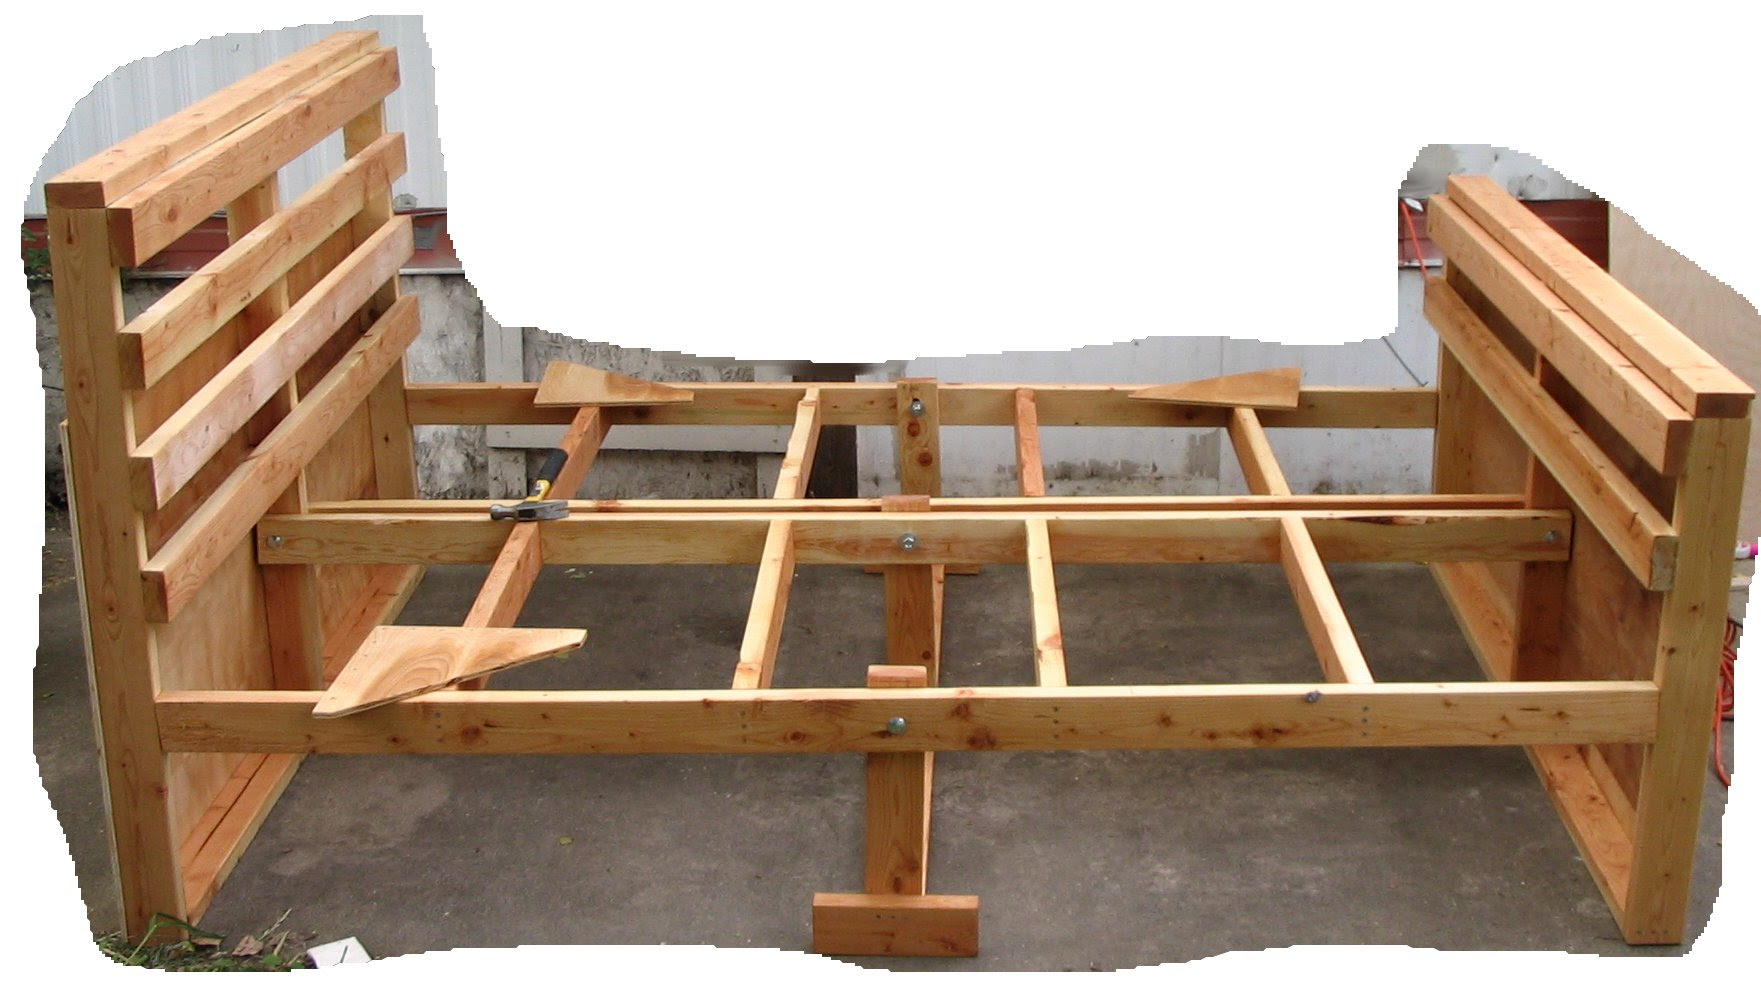 Woodworking Plans For Bed Frame ~ wood working projects